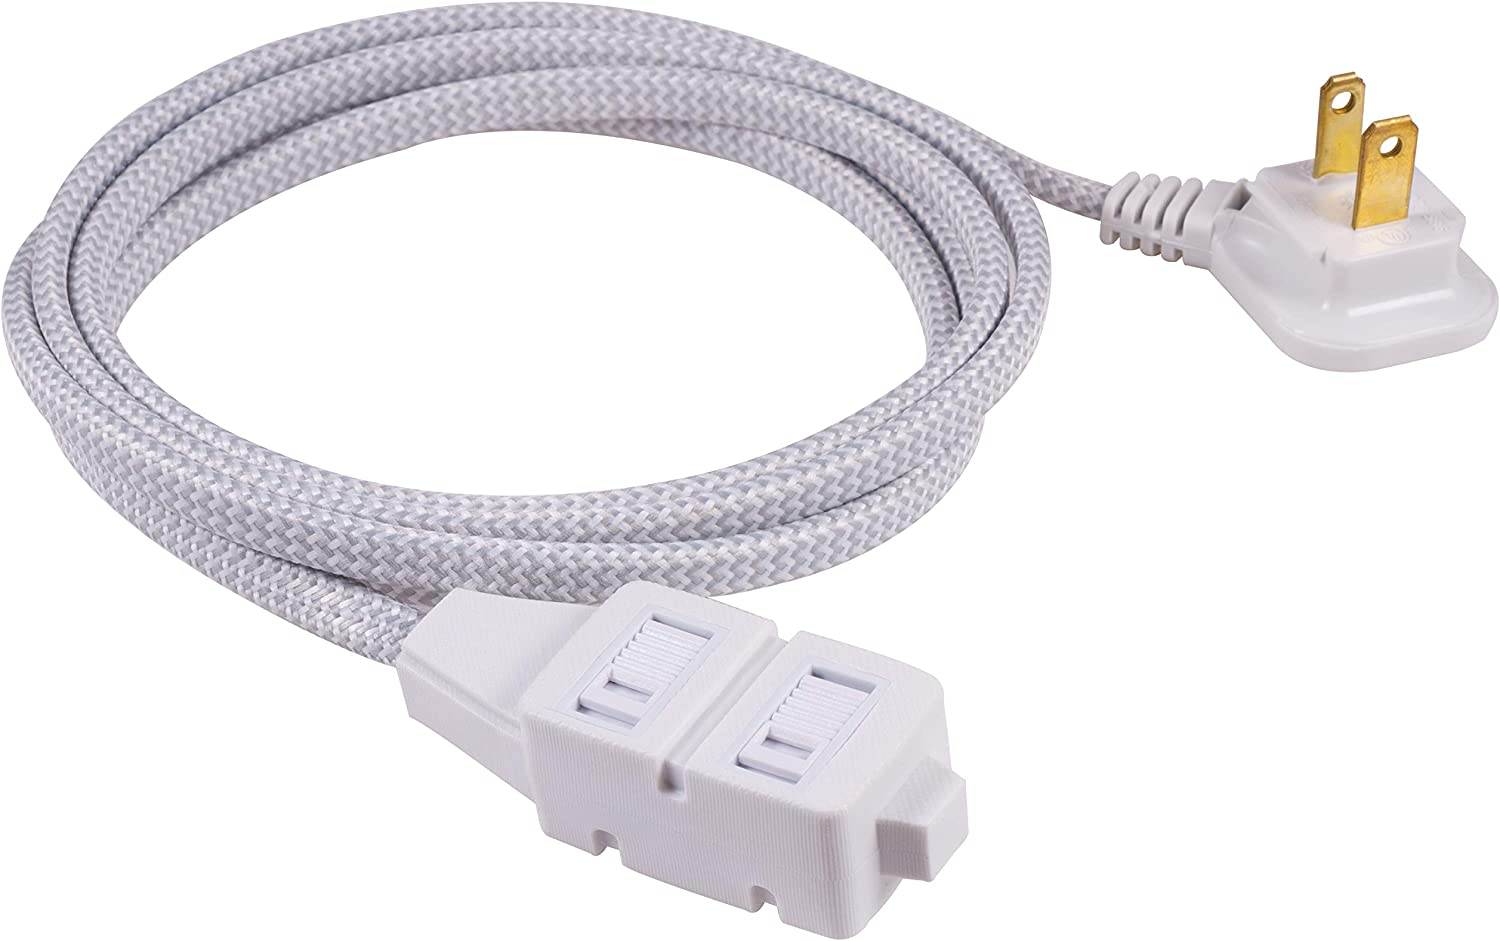 GE, Gray & White, 6 Ft Designer Braided Extension, 3 Strip, 2 Prong Outlets, Flat Plug, Tangle-Free Power Cord, Perfect for Home, Office or Kitchen, UL Listed, 42383